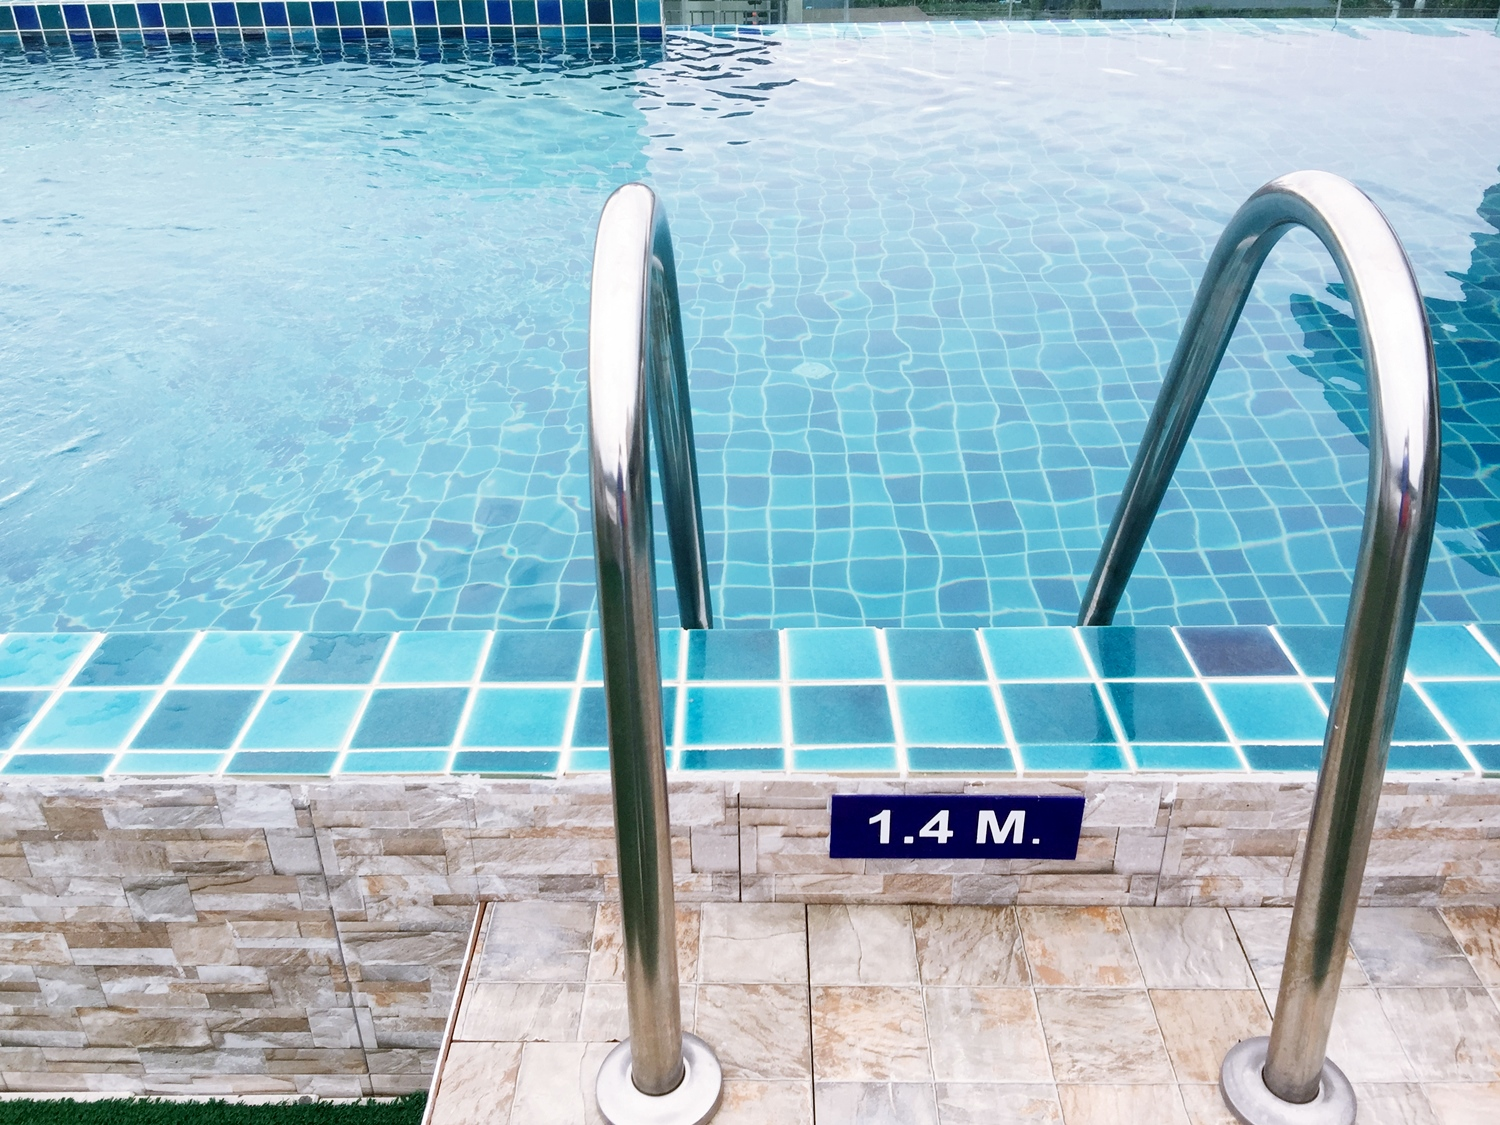 45 room hotel in Patong with pool for lease just 200m to Bangla Road